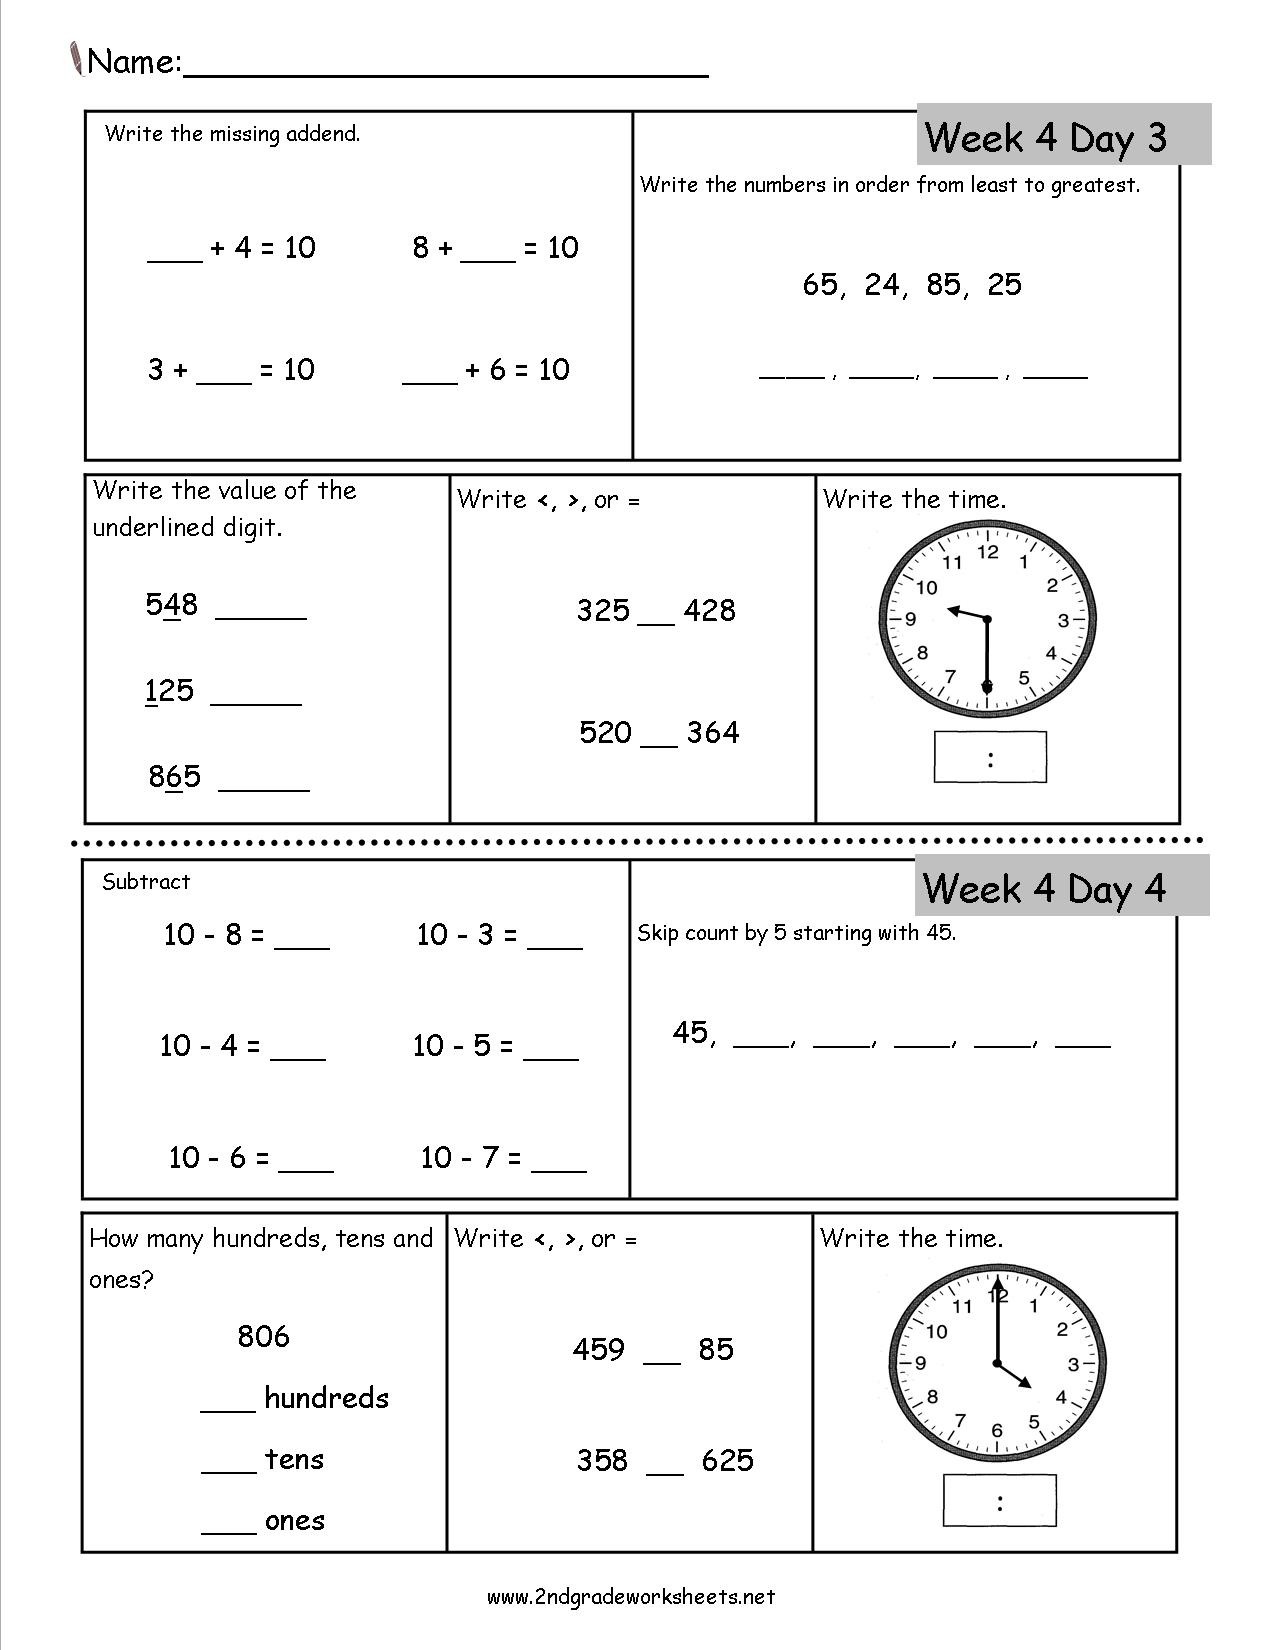 2Nd Grade Daily Math Worksheets 3Rd Review Dailymath